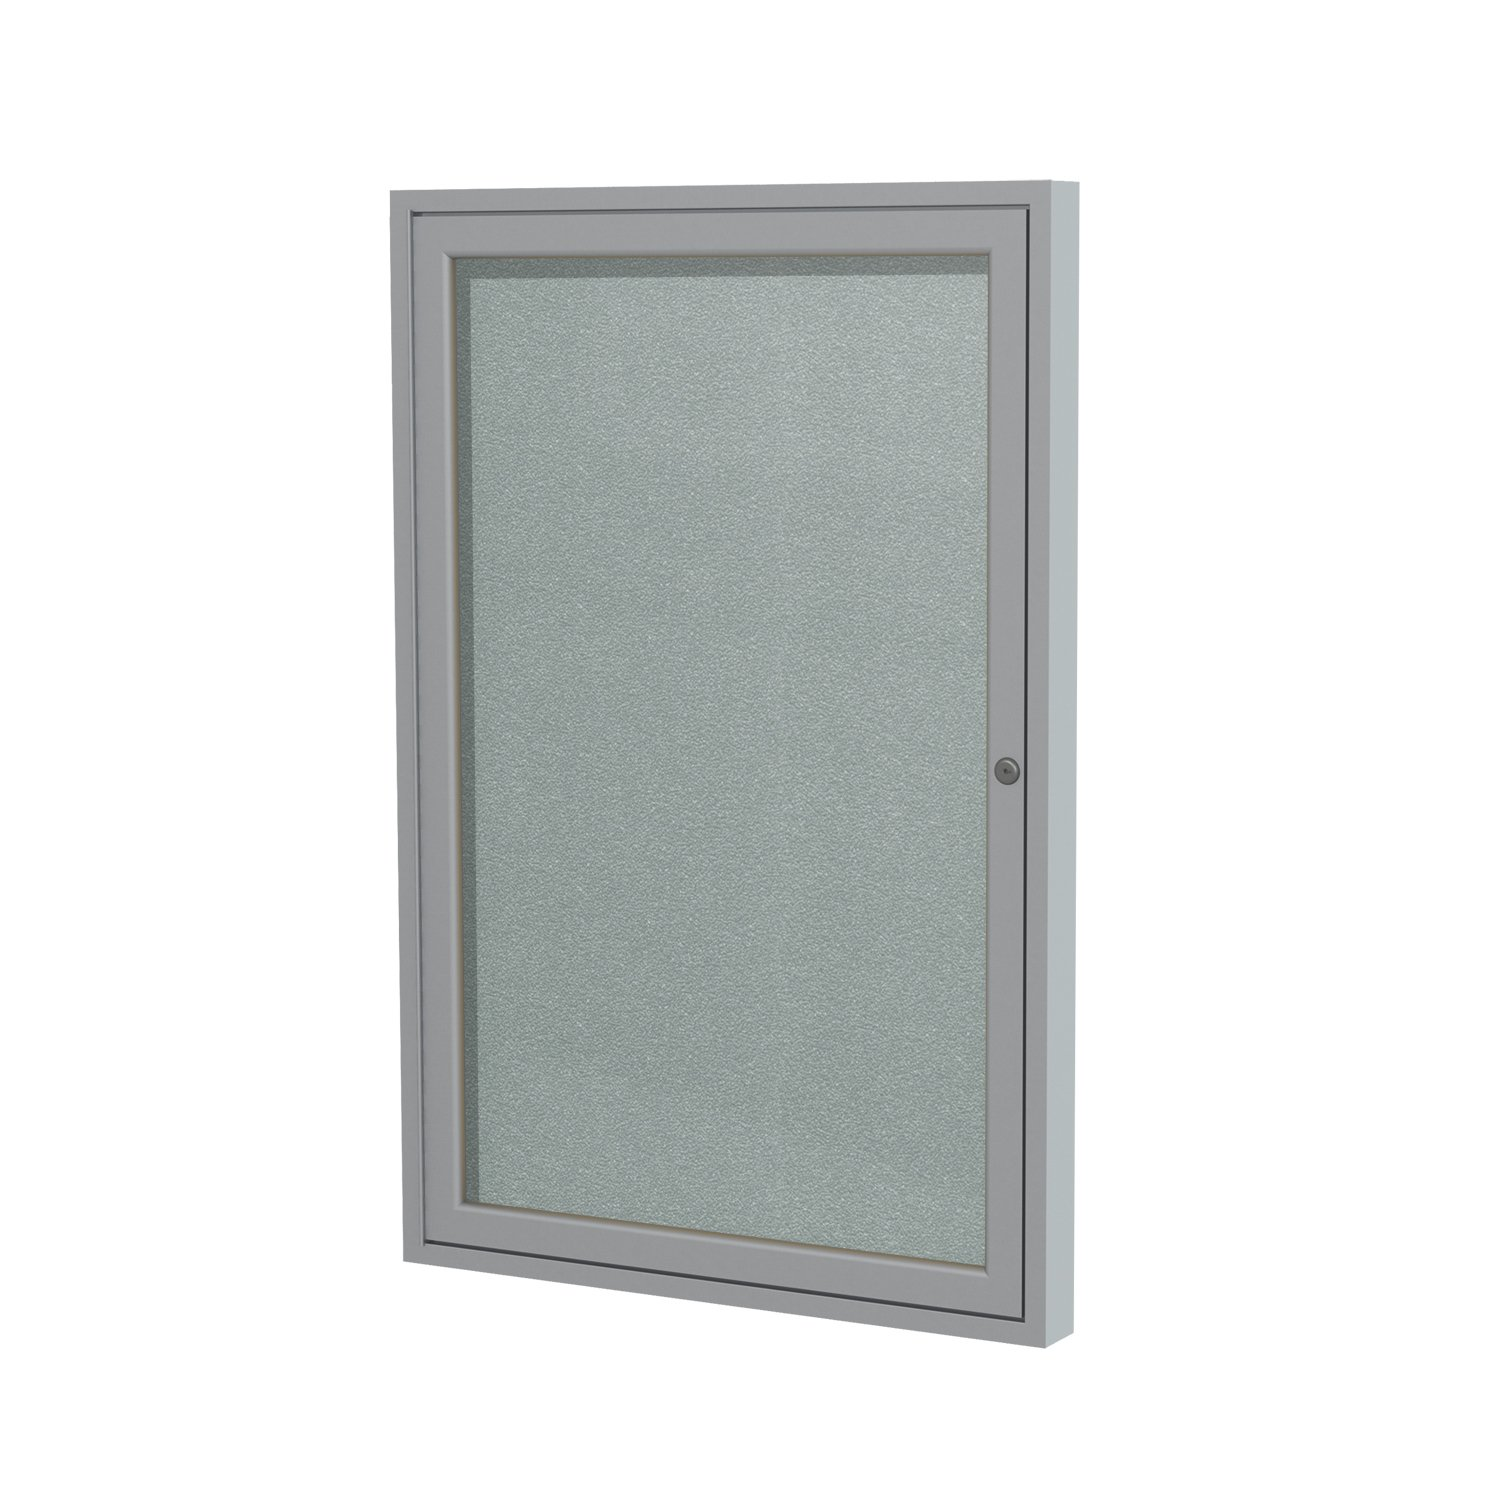 1 Door Outdoor Enclosed Bulletin Board Size: 3' H x 2' W, Frame Finish: Satin, Surface Color: Silver Ghent PA13624VX-193